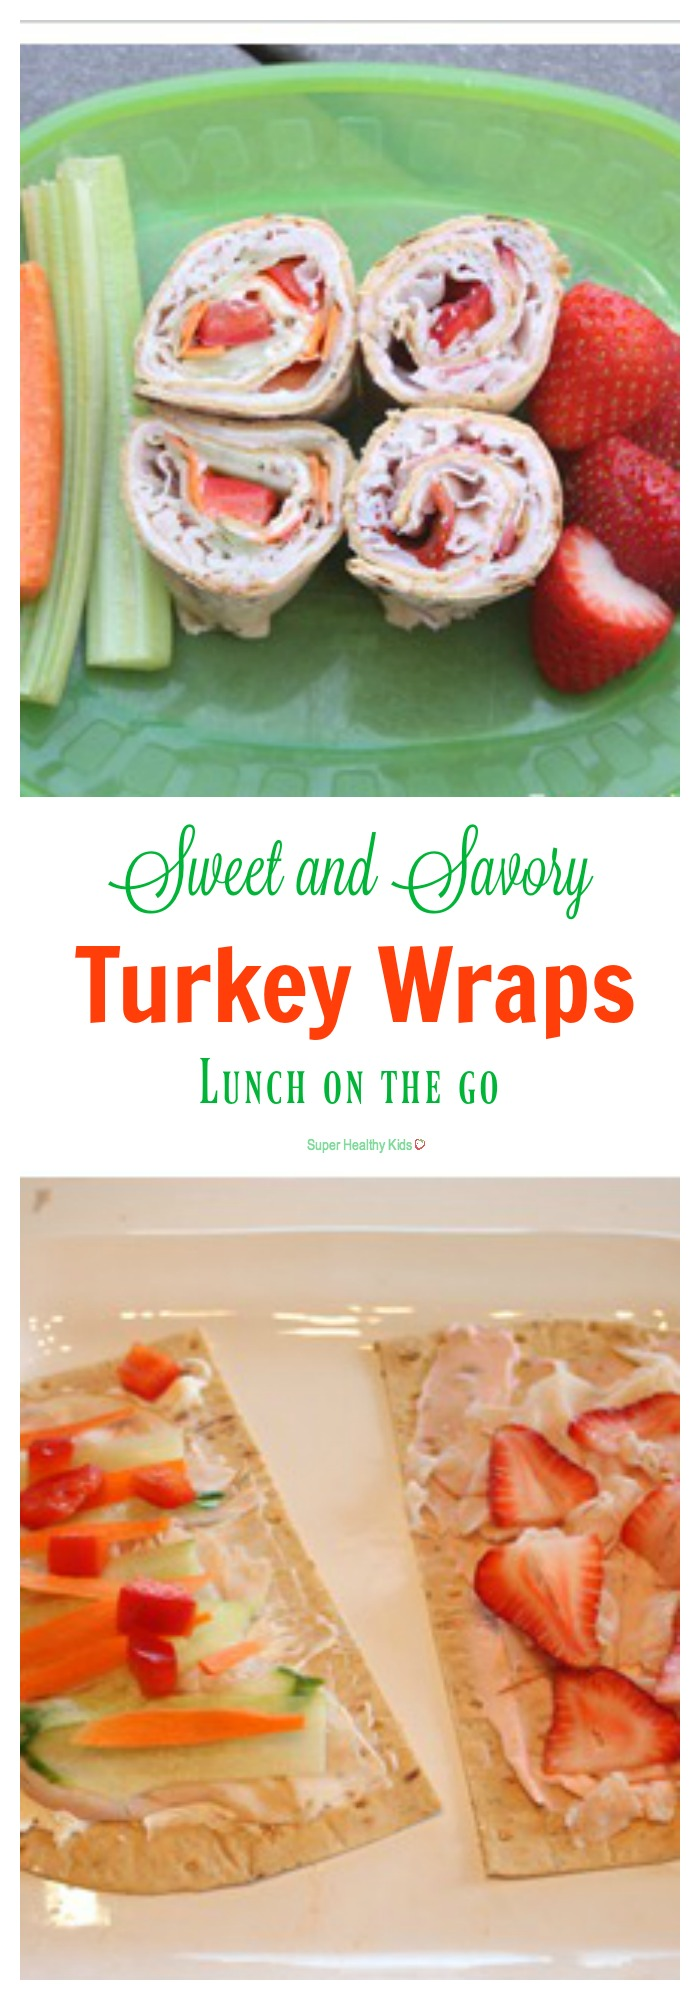 Sweet and Savory Turkey Wraps. Here's your next go-to lunch! http://www.superhealthykids.com/quick-lunch-for-kids-sweet-and-savory-turkey-wraps/